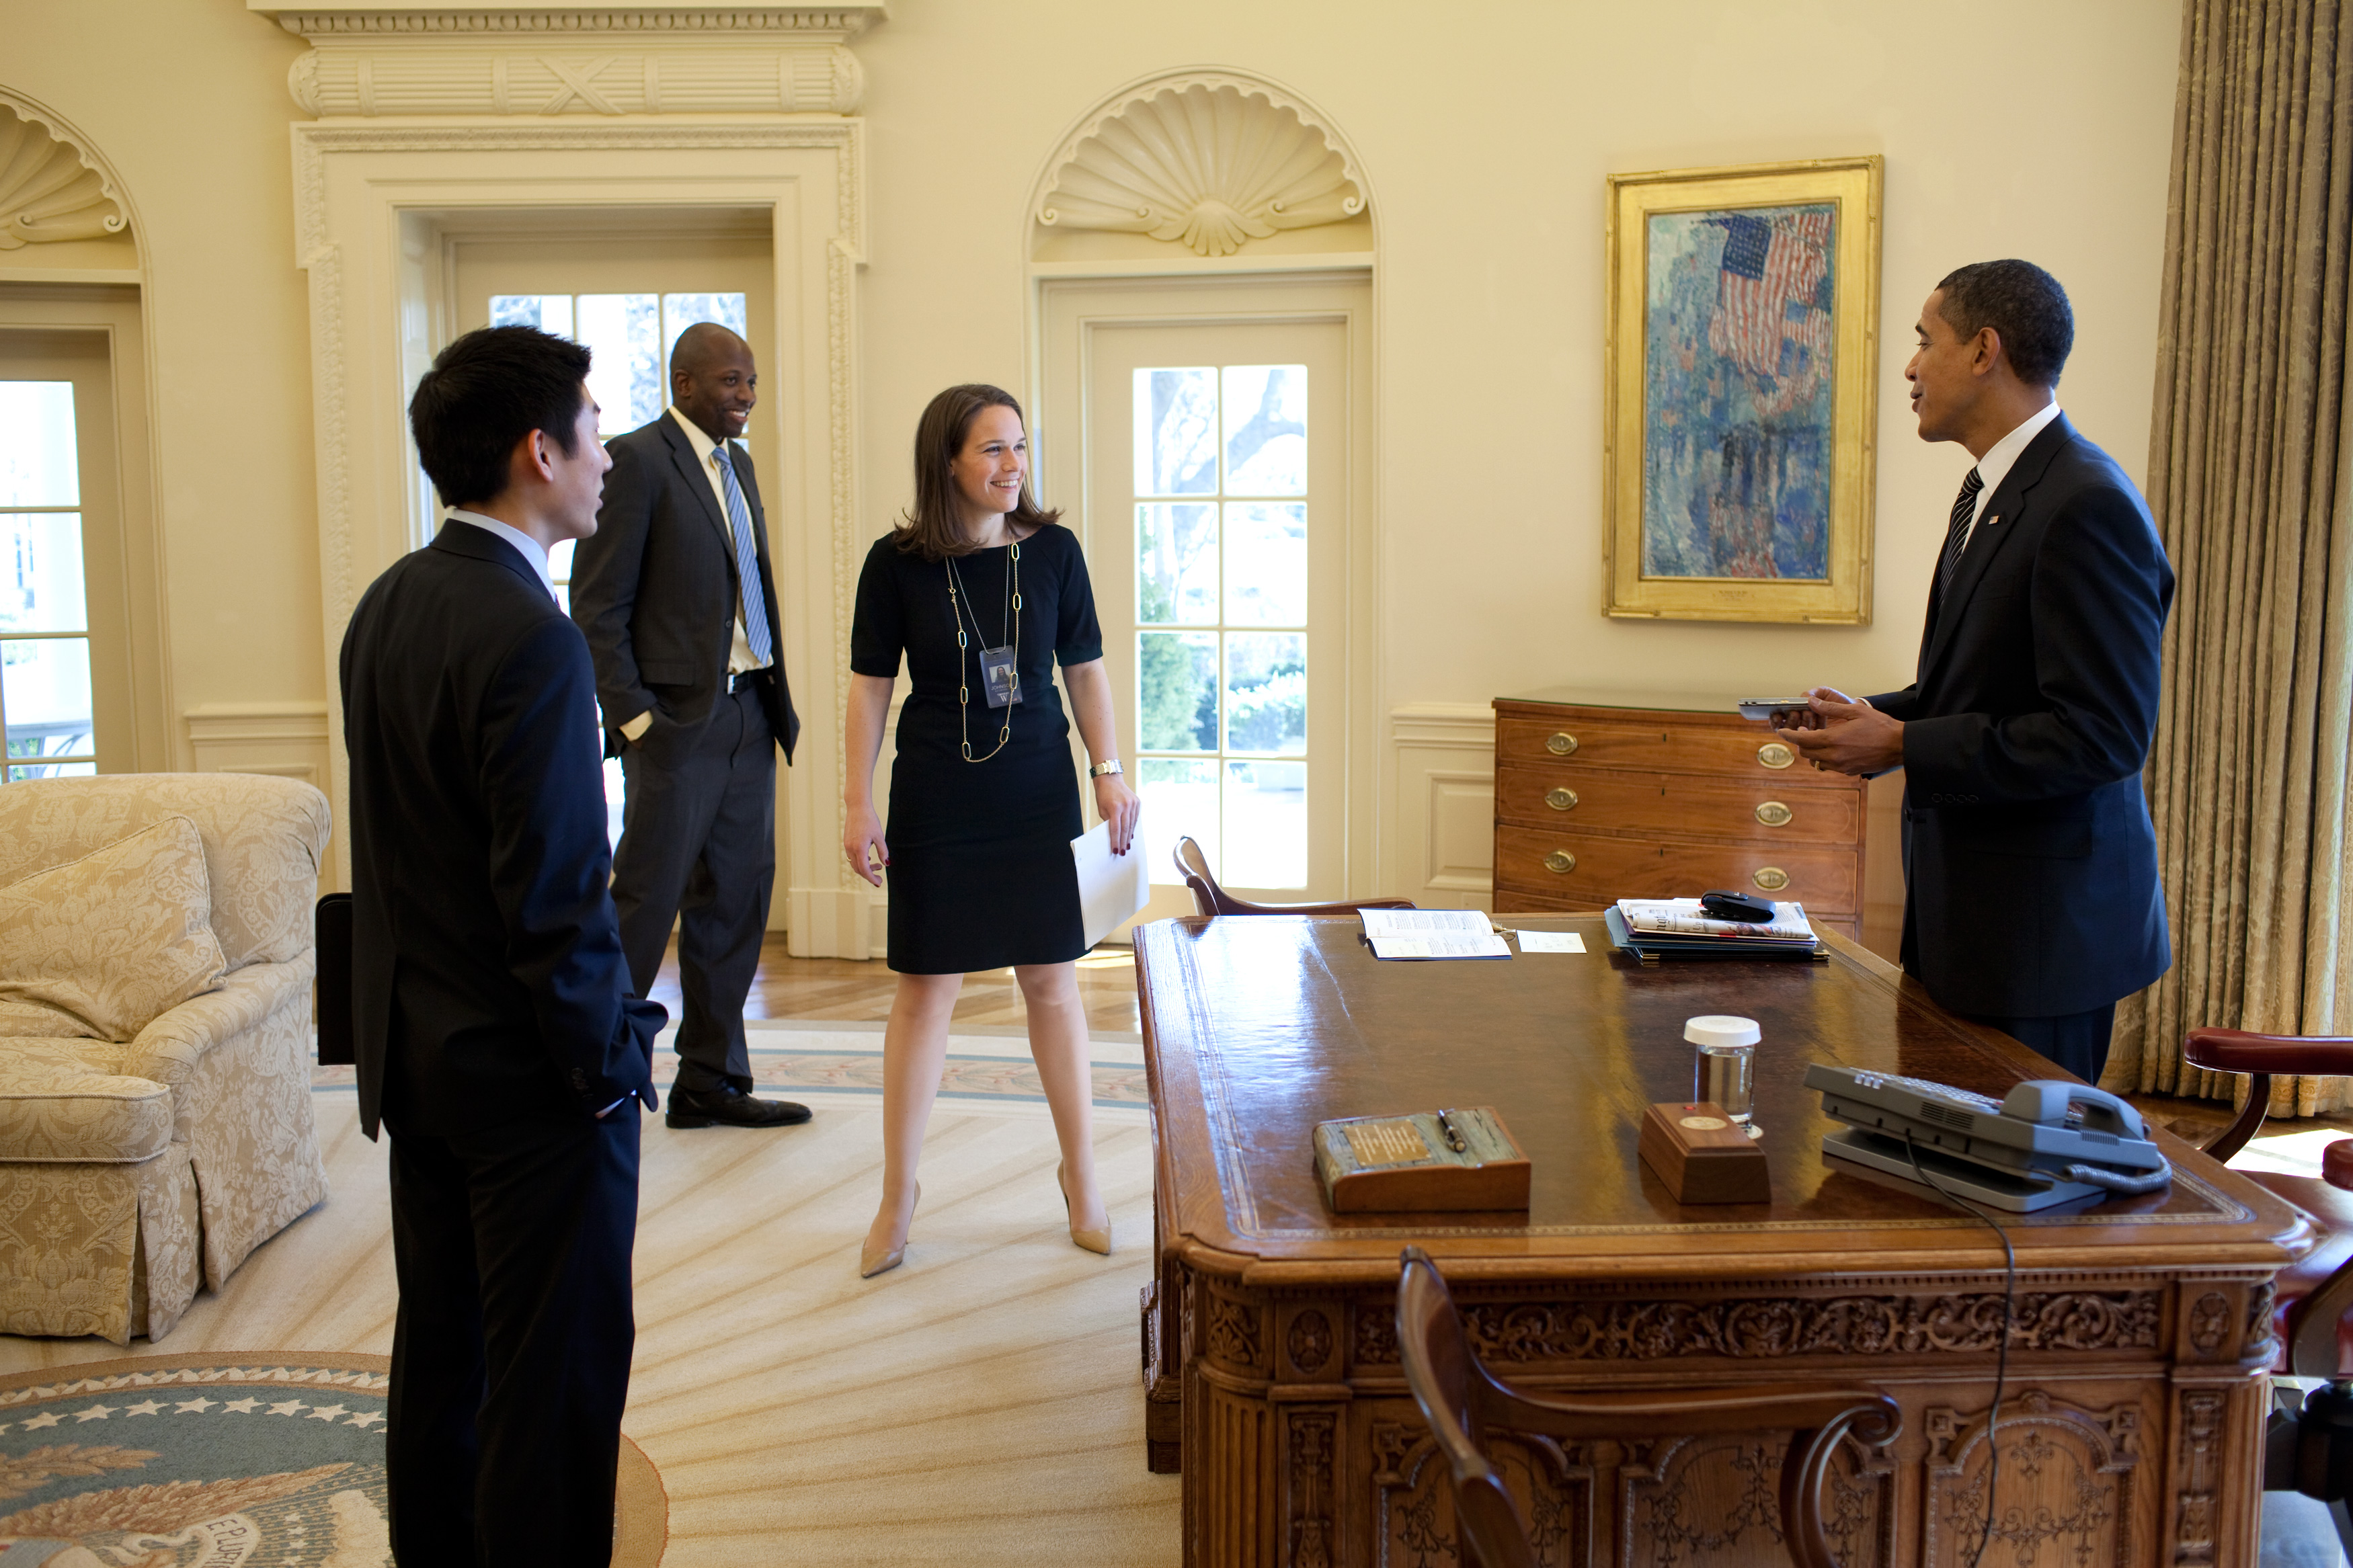 File:Barack Obama, Eugene Kang, Katie Johnson and Reggie Love in the ...